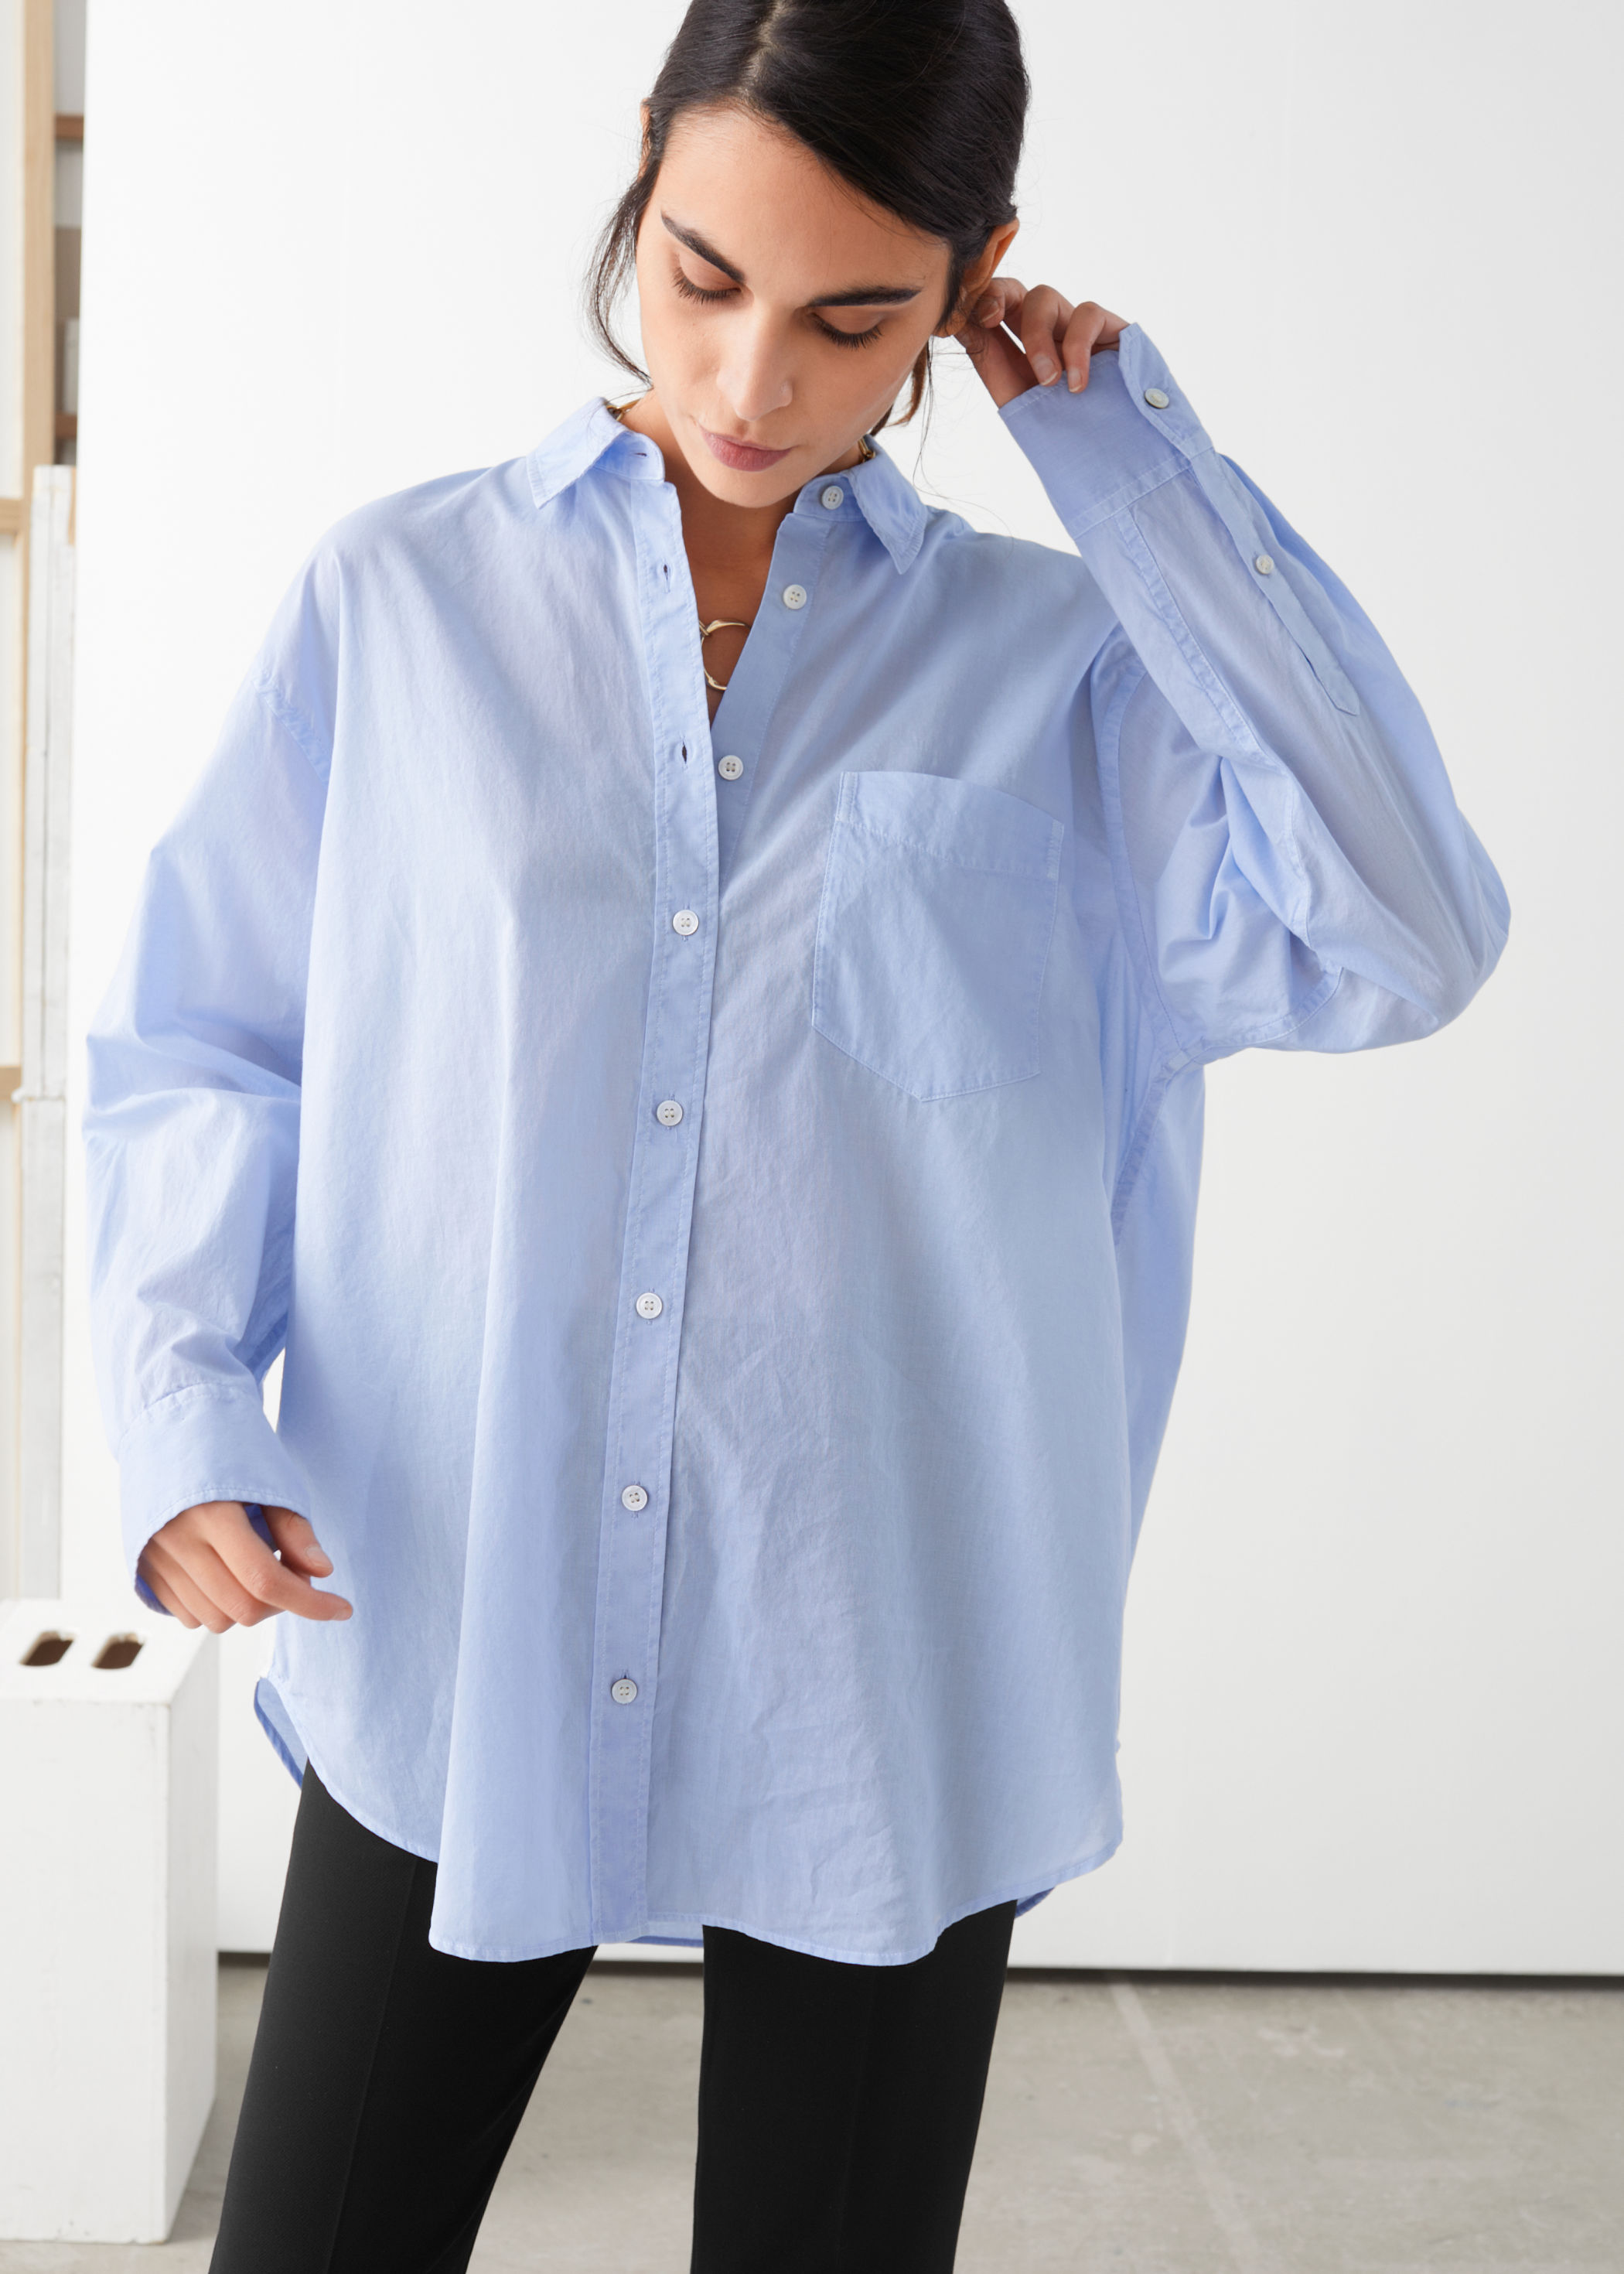 other-stories-oversized-button-up-shirt-blue